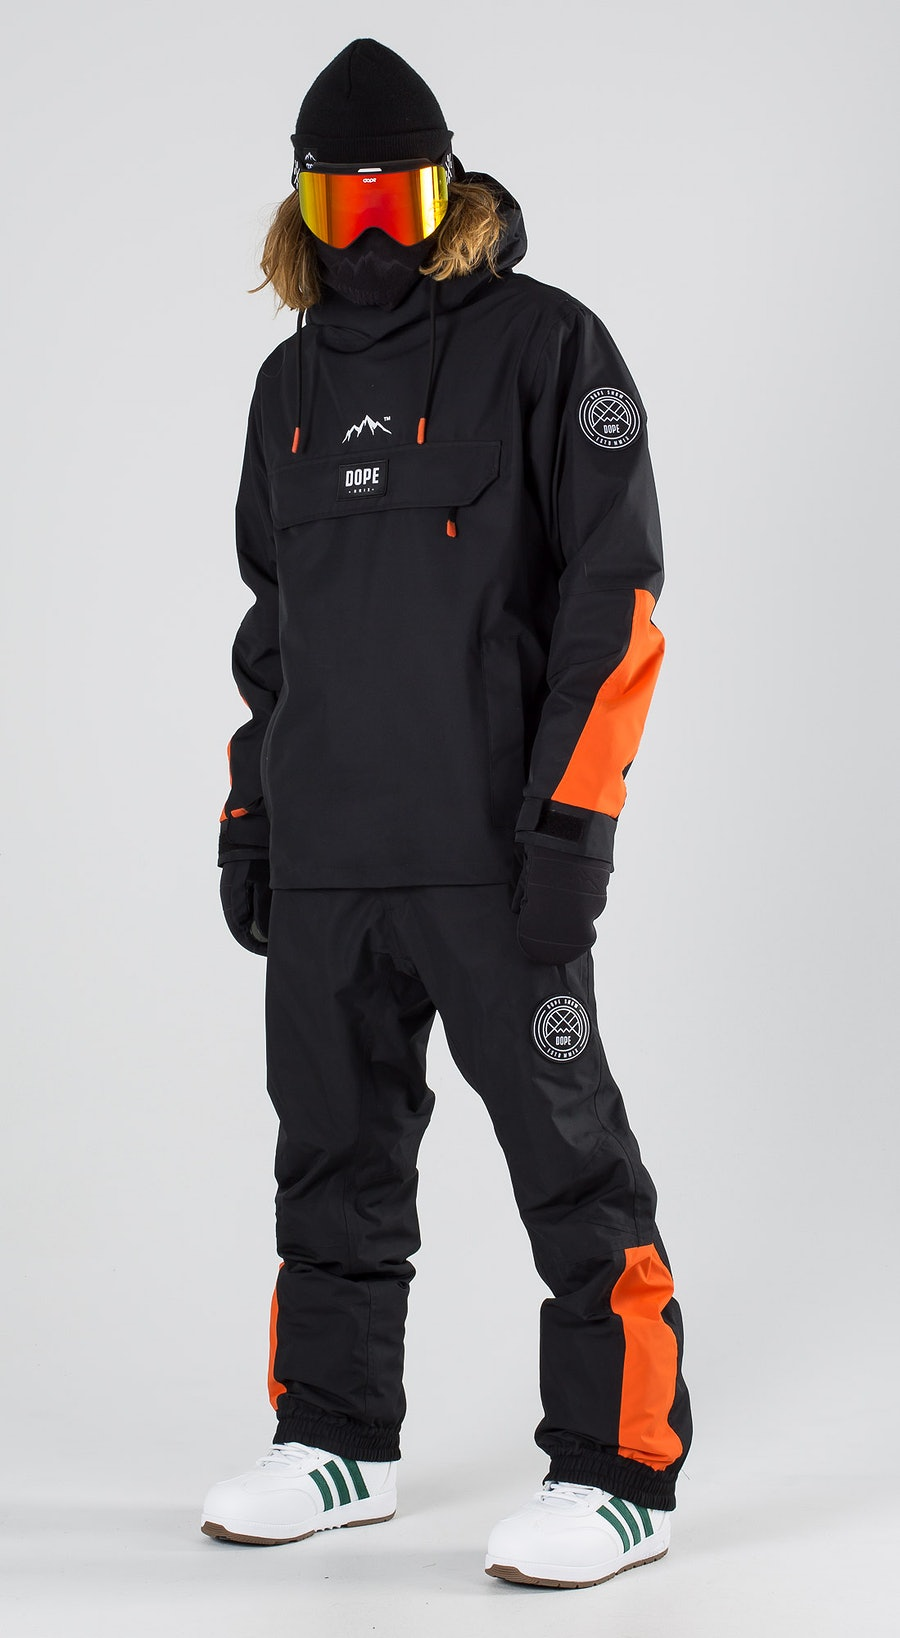 Dope Blizzard LE Black Orange Snowboardklaer Multi